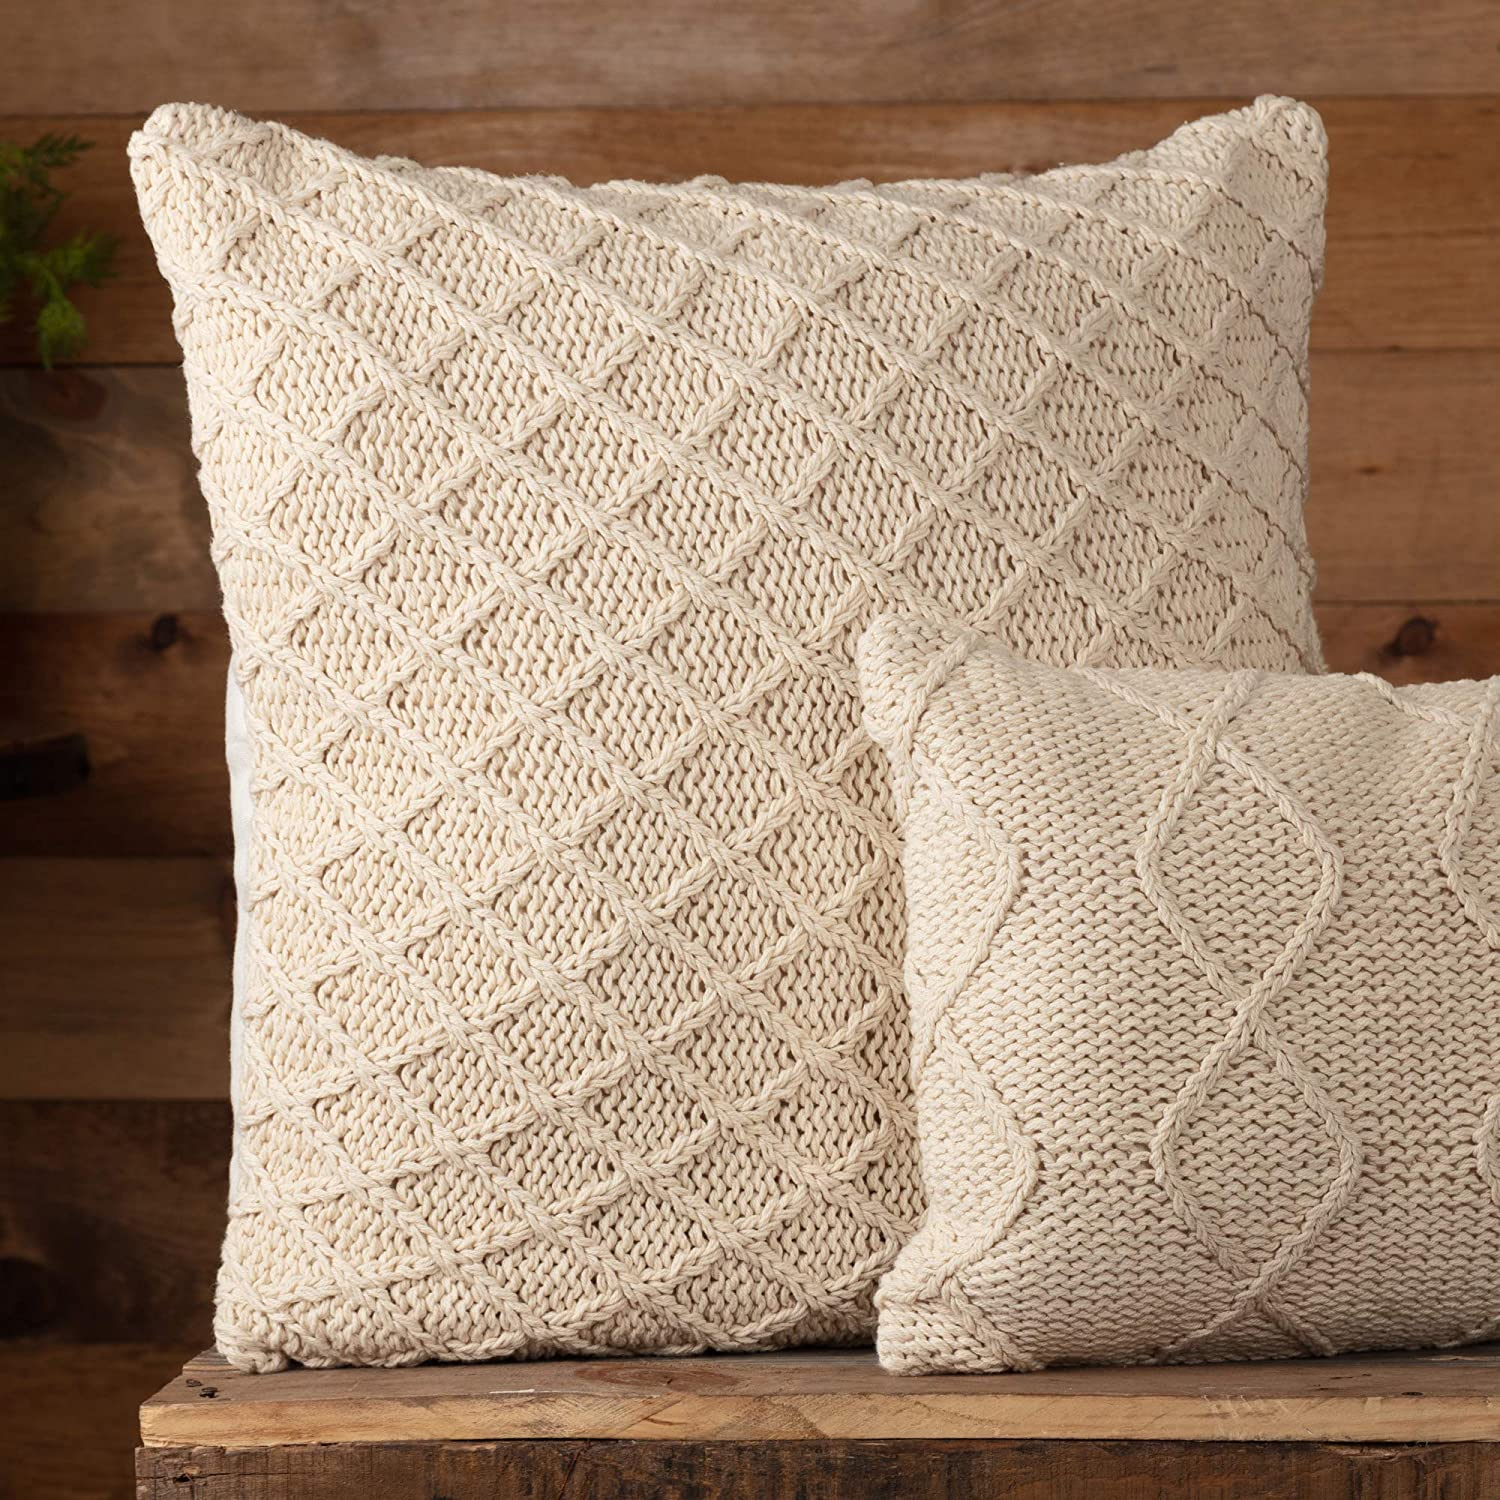 """Piper Classics Cozy Knit Throw Pillow Cover, 20"""" x 20"""", Machine Knitted Small Diamond Pattern, Modern Rustic Farmhouse Décor, Cream Yarn Accent Pillow"""